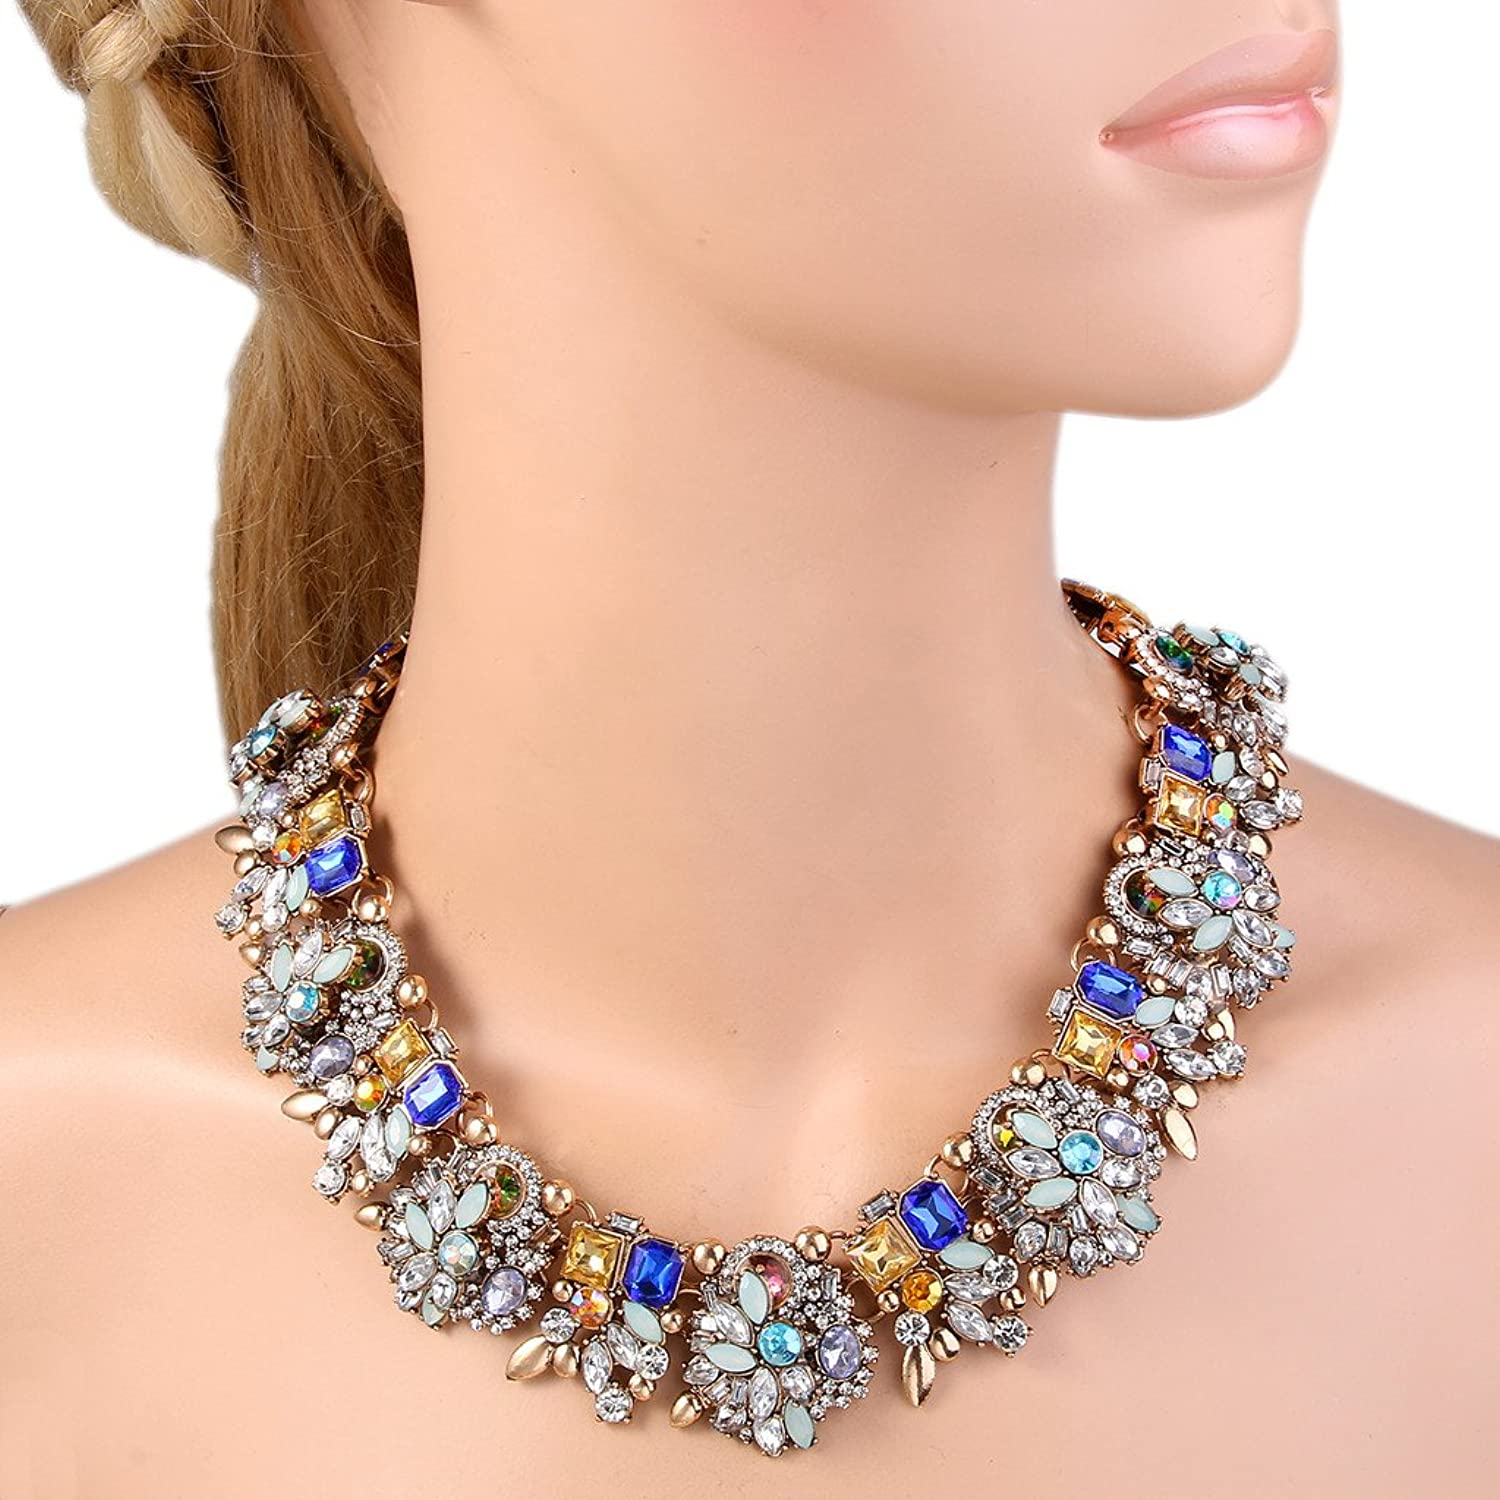 1930s Jewelry | Art Deco Style Jewelry  Art Deco Statement Necklace Austrian Crystal Gold-Tone $22.99 AT vintagedancer.com